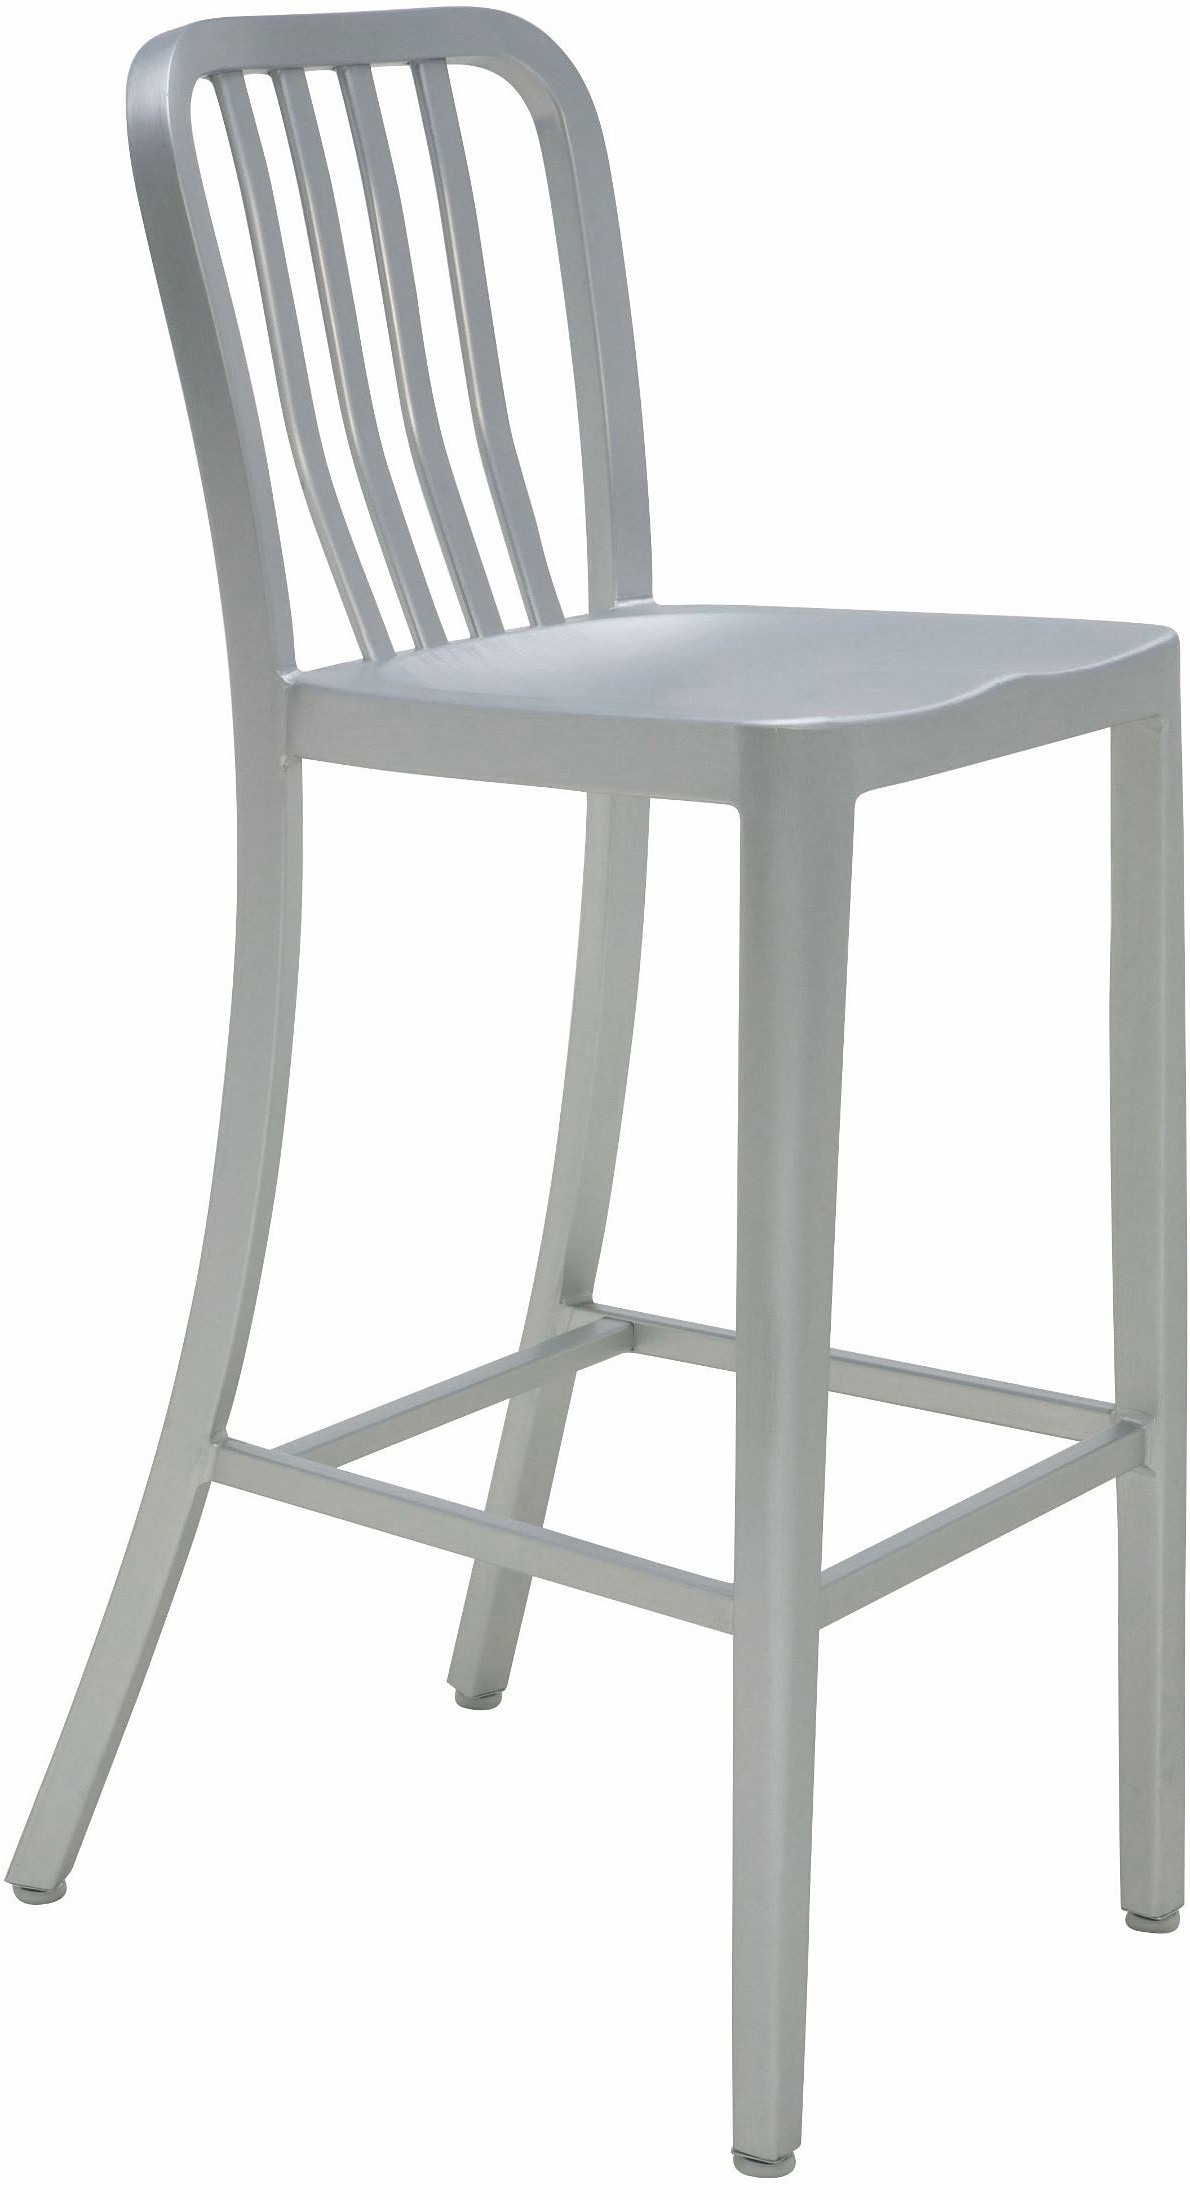 the nuevo soho bar stool in aluminum